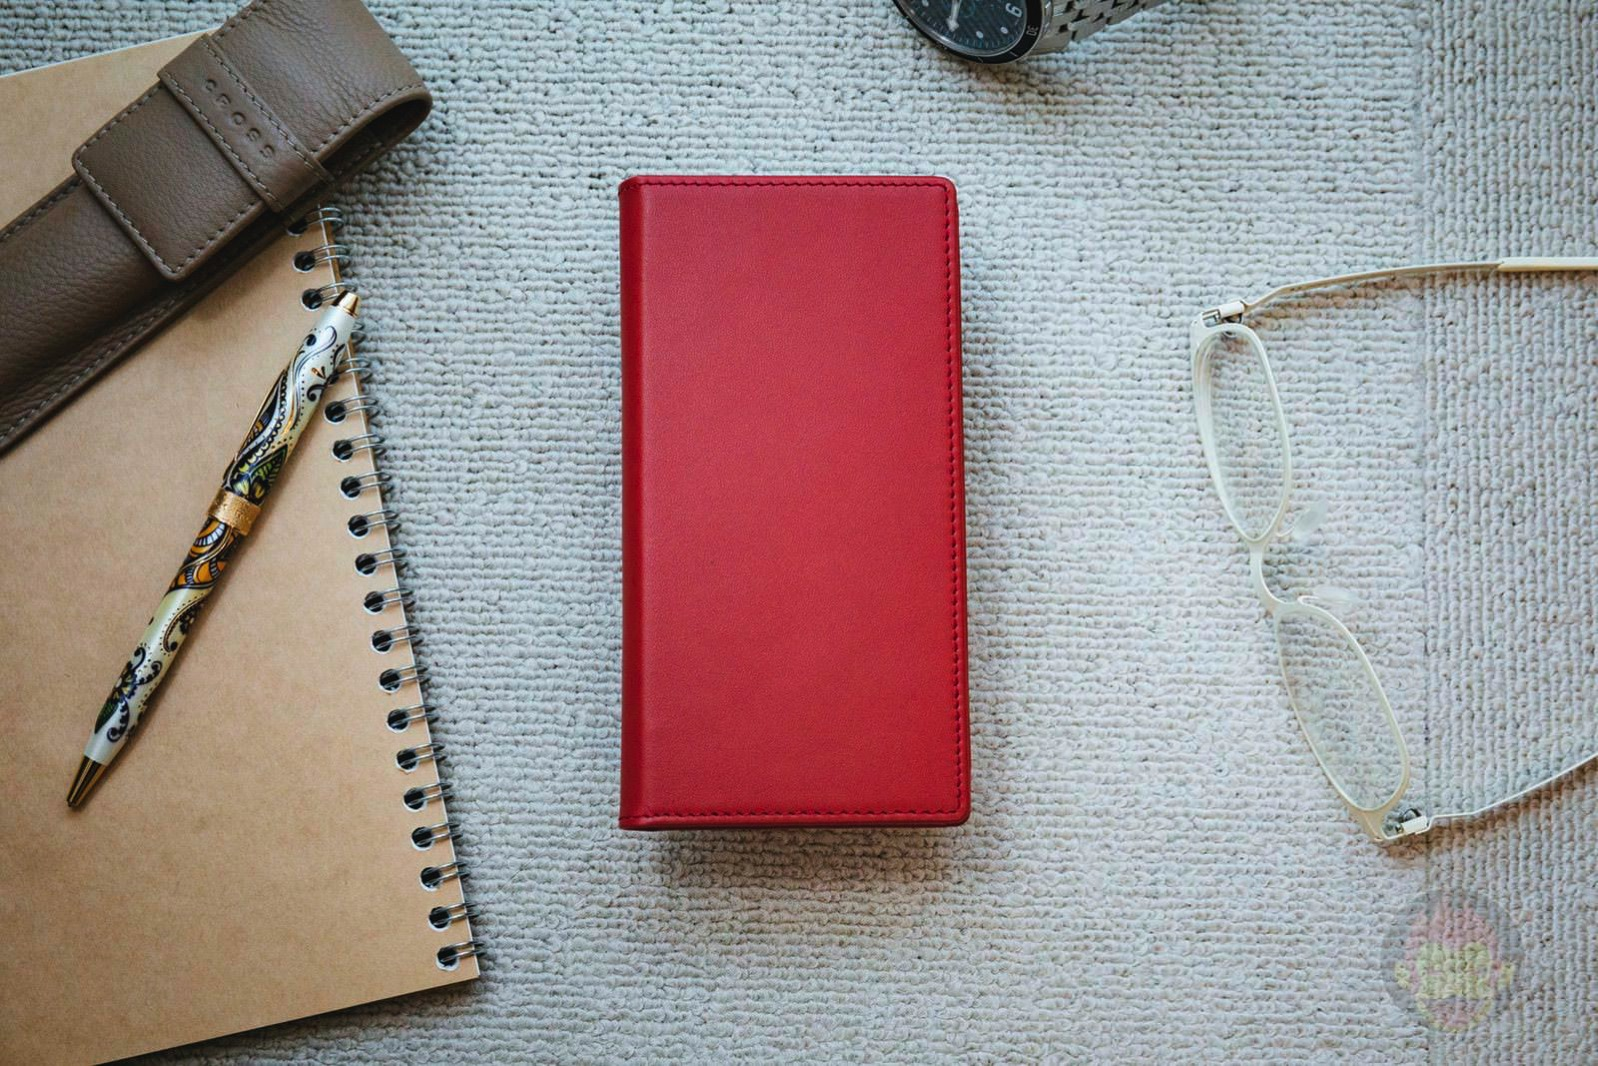 GRAMAS Full Leather Case Red for iPhoneX SIM PIN 02